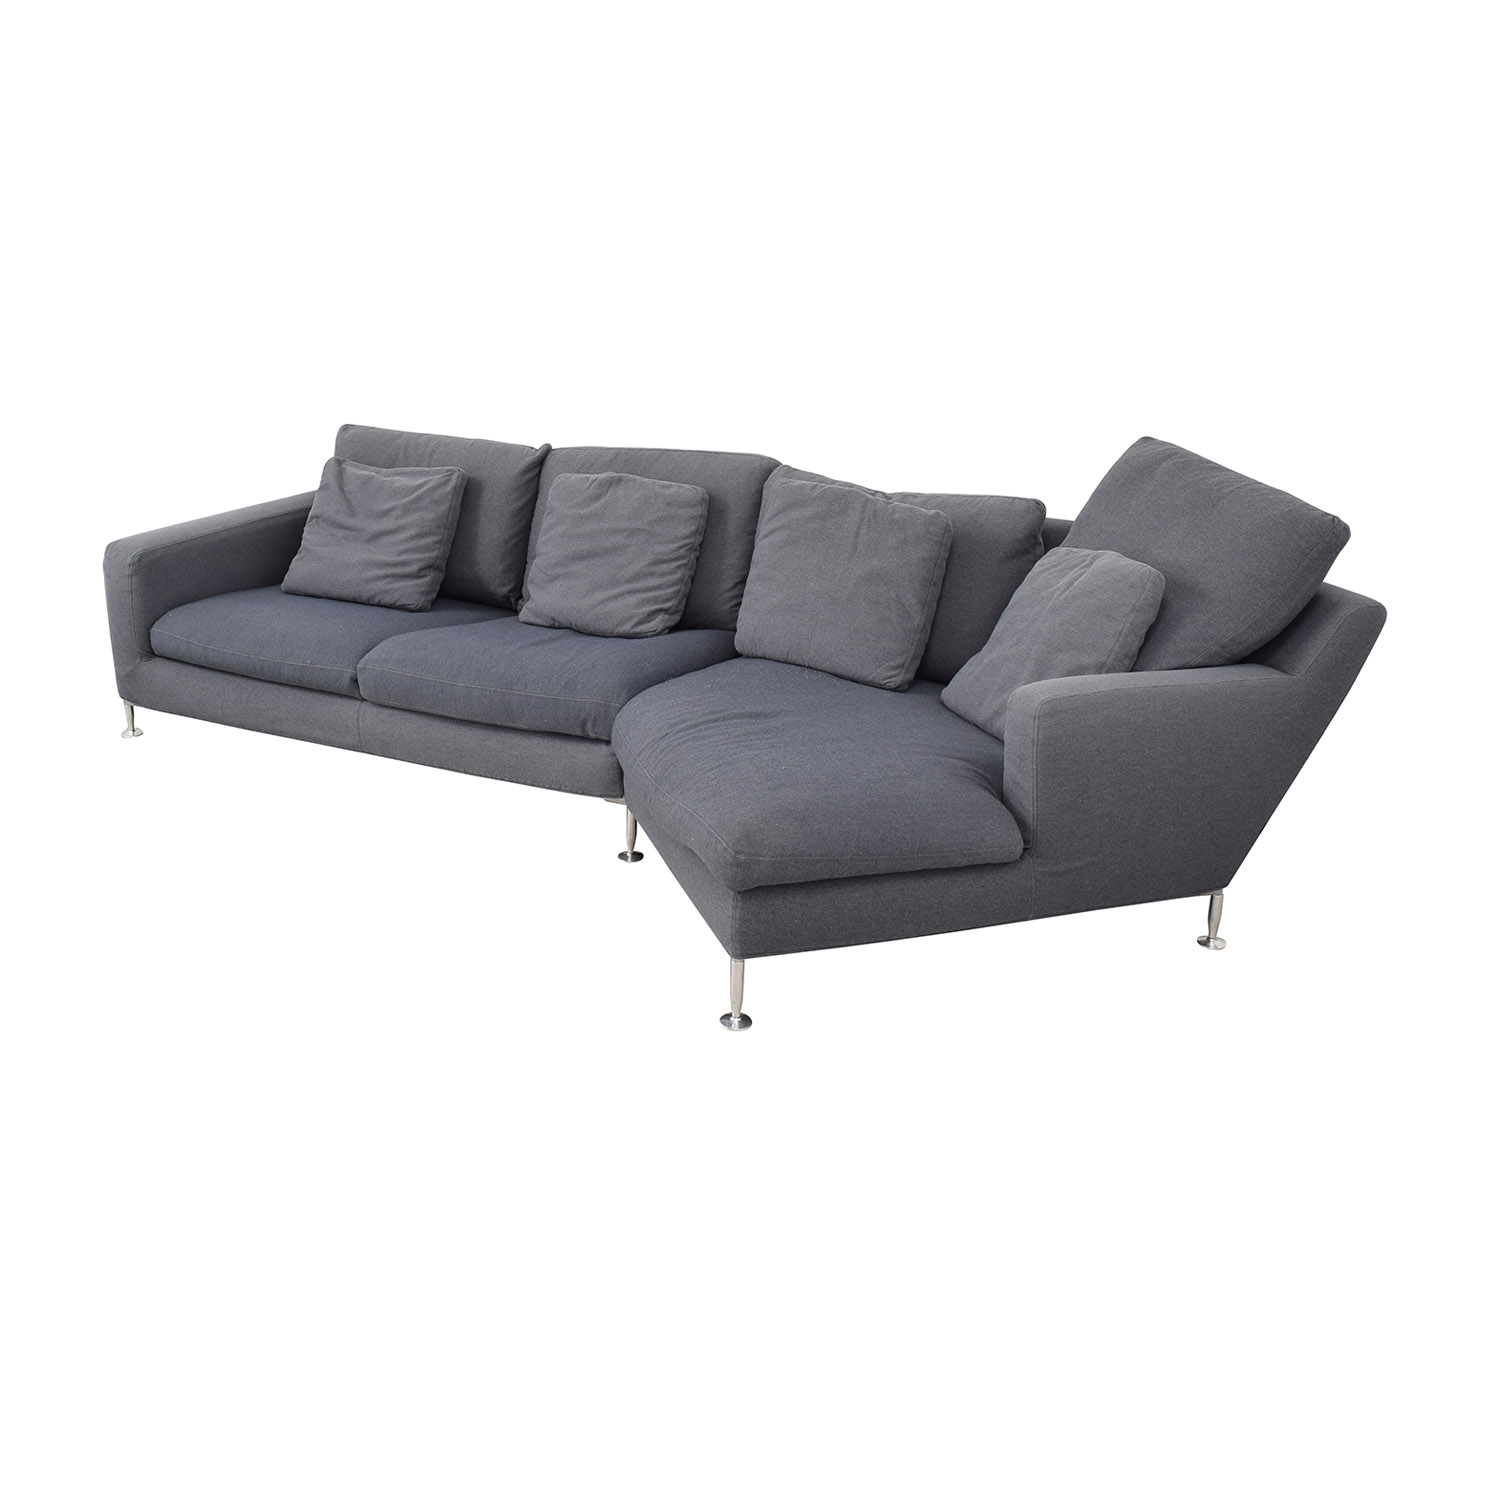 B&B Italia B&B Italia Harry Sectional on sale